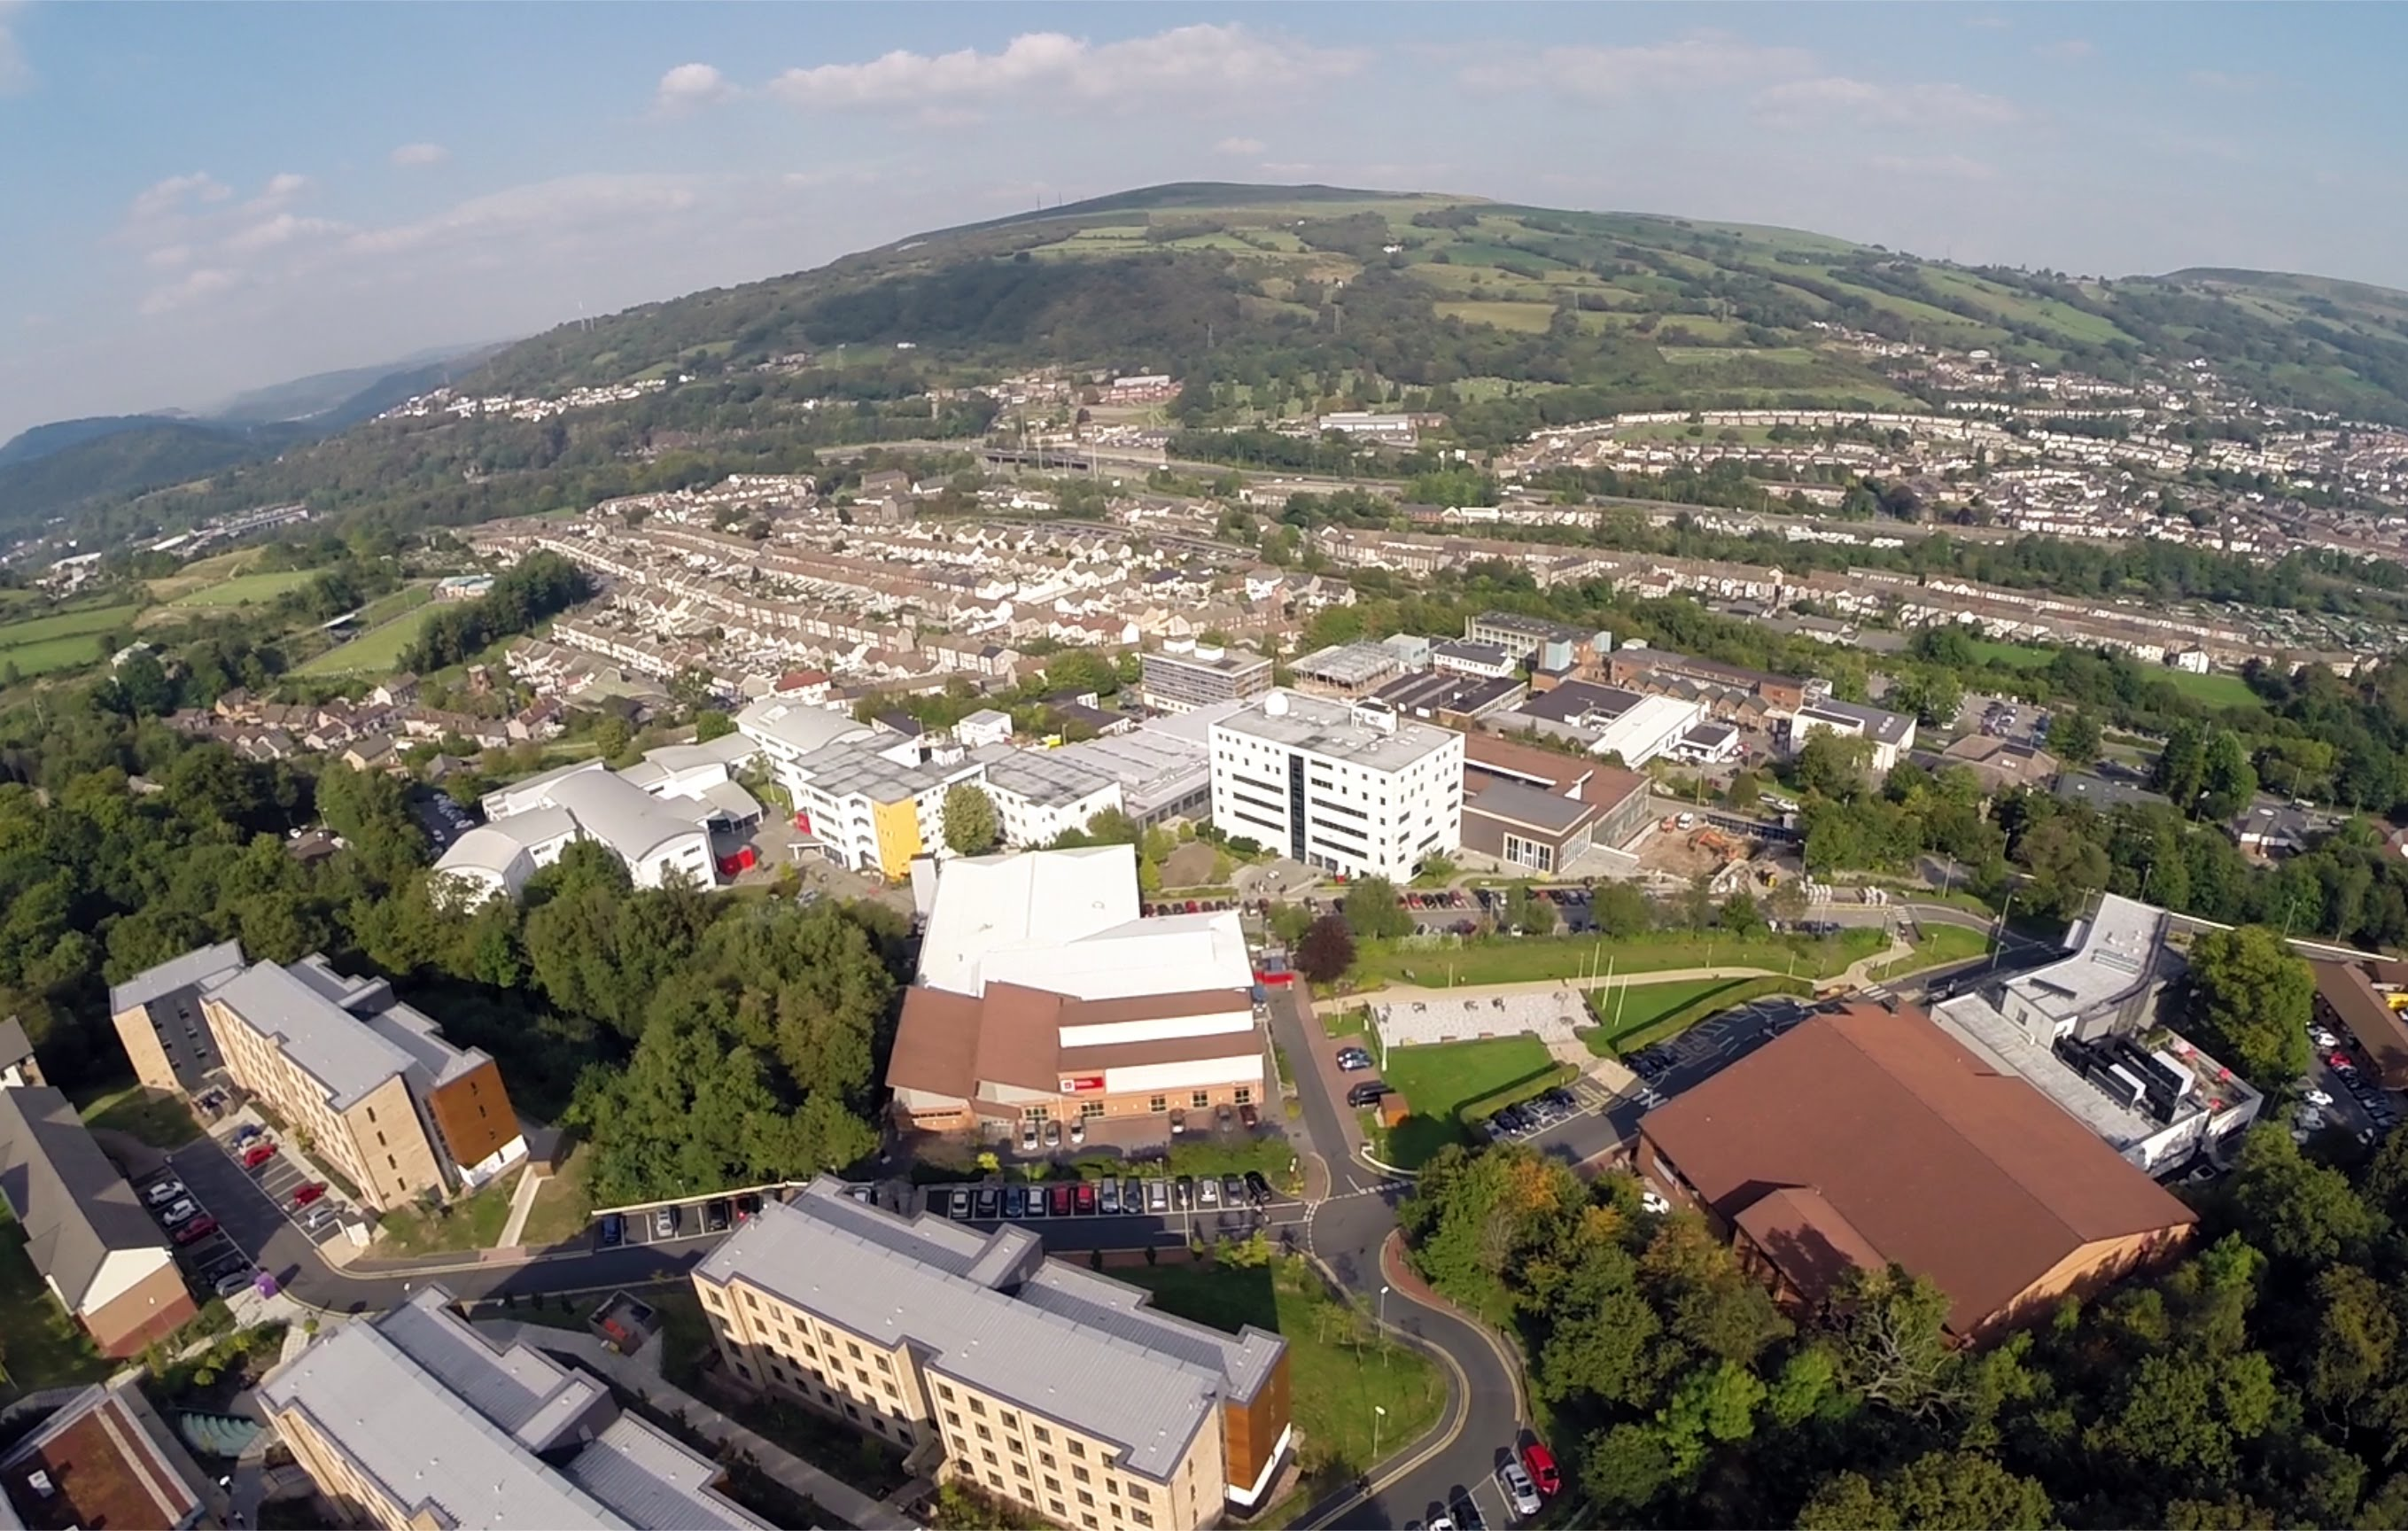 The aerial view of USW